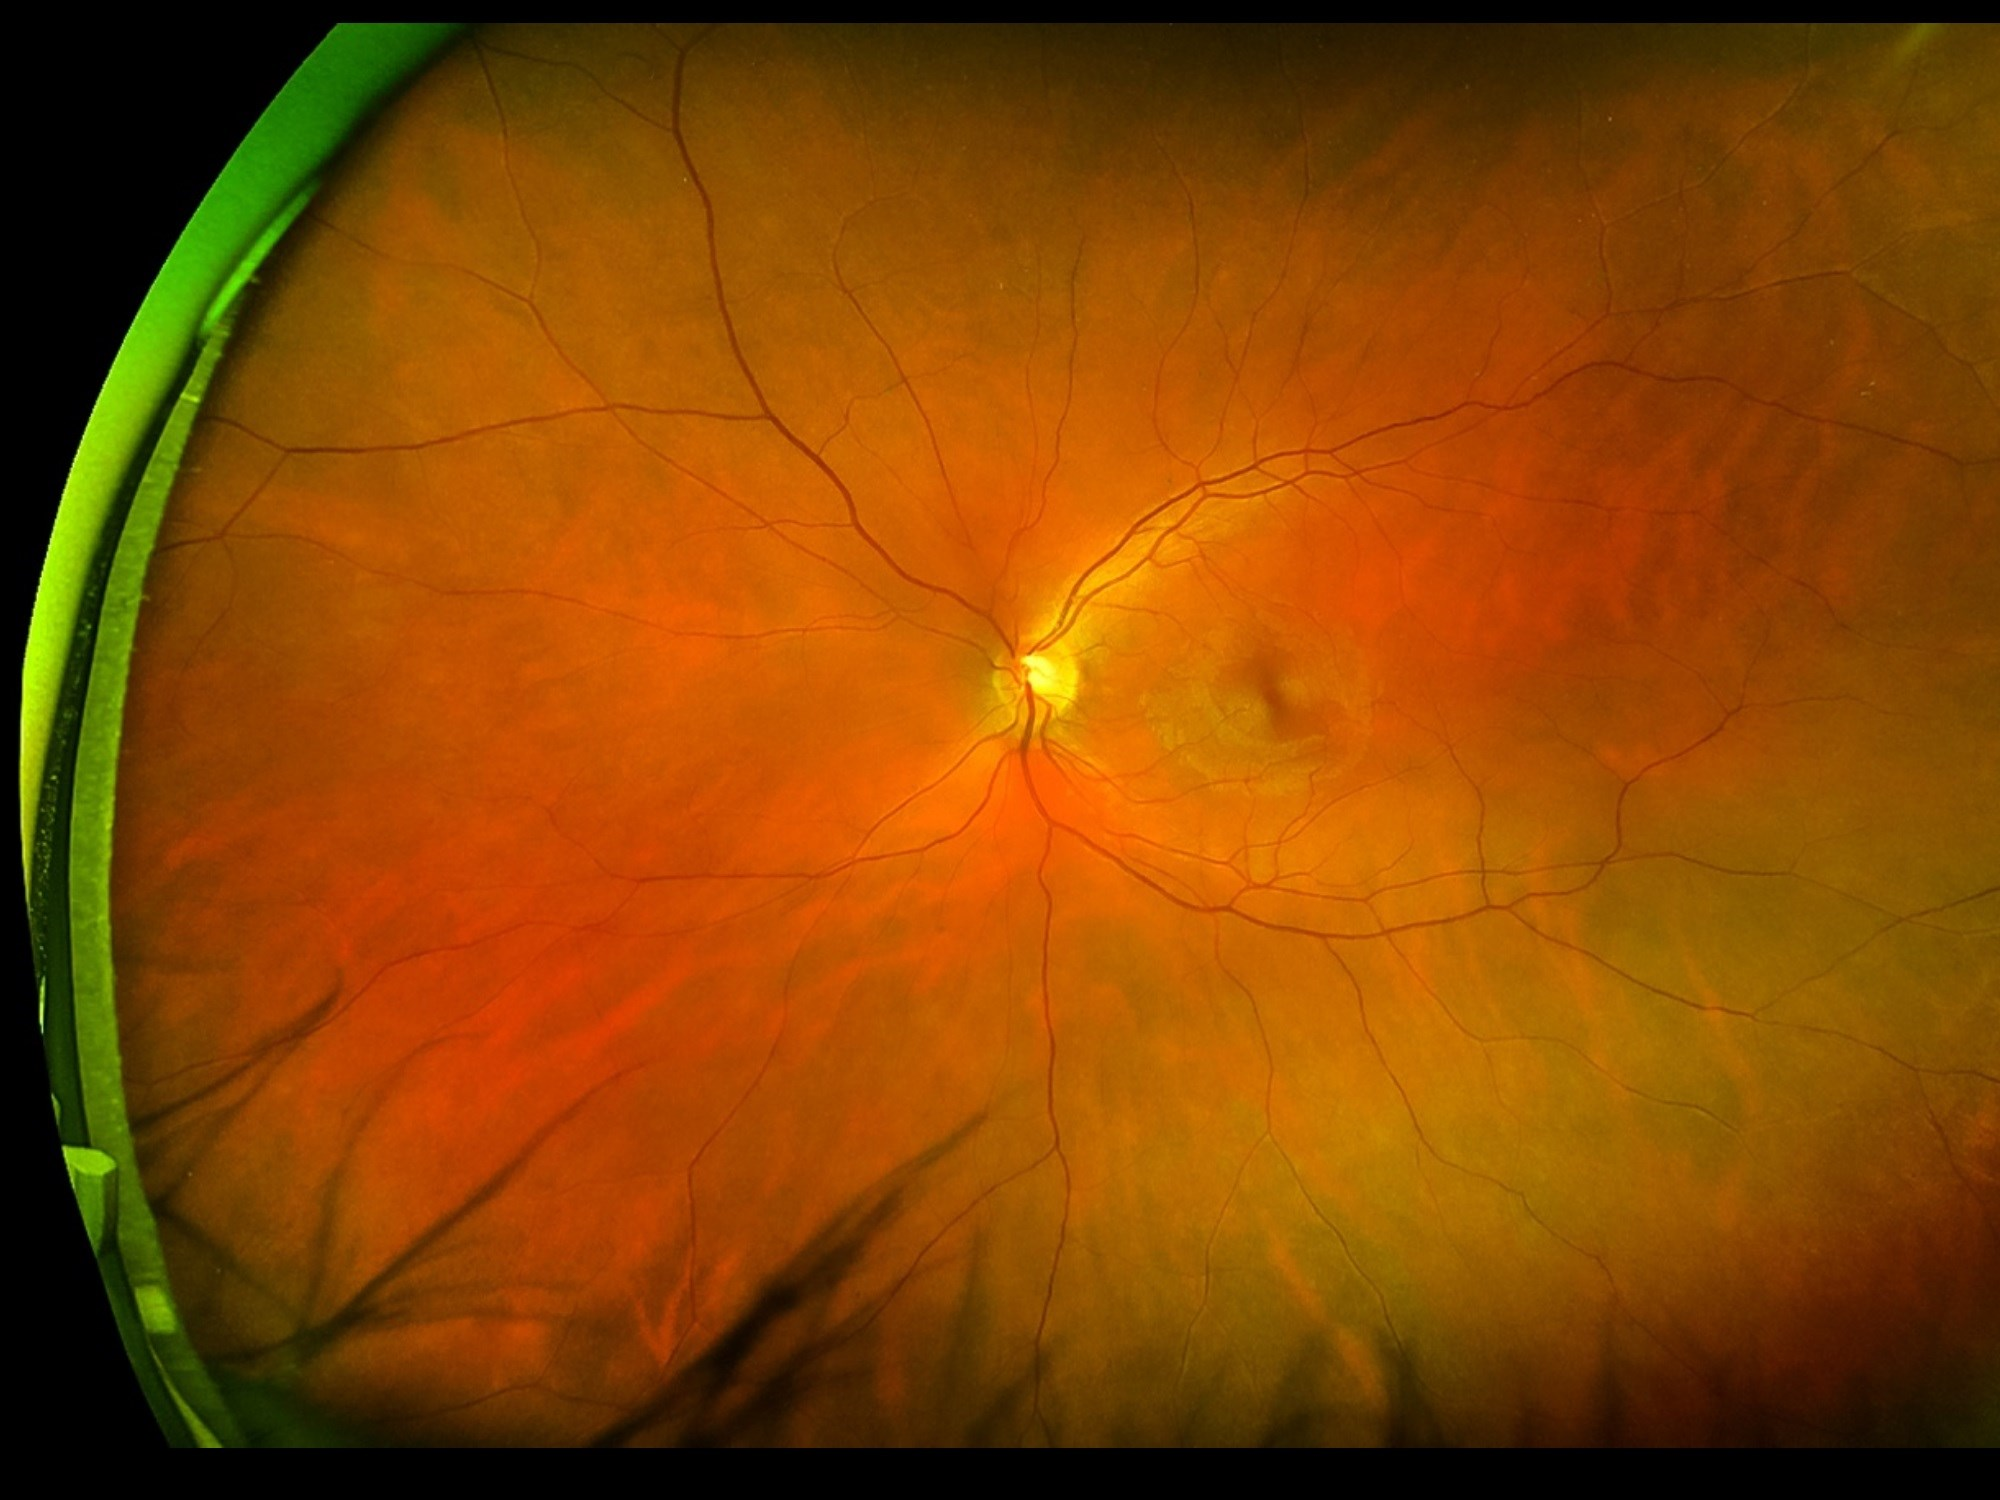 Patients with AIDS-related CMV retinitis receiving cART, but not specific anti-CMV therapy, were found to have active retinitis.